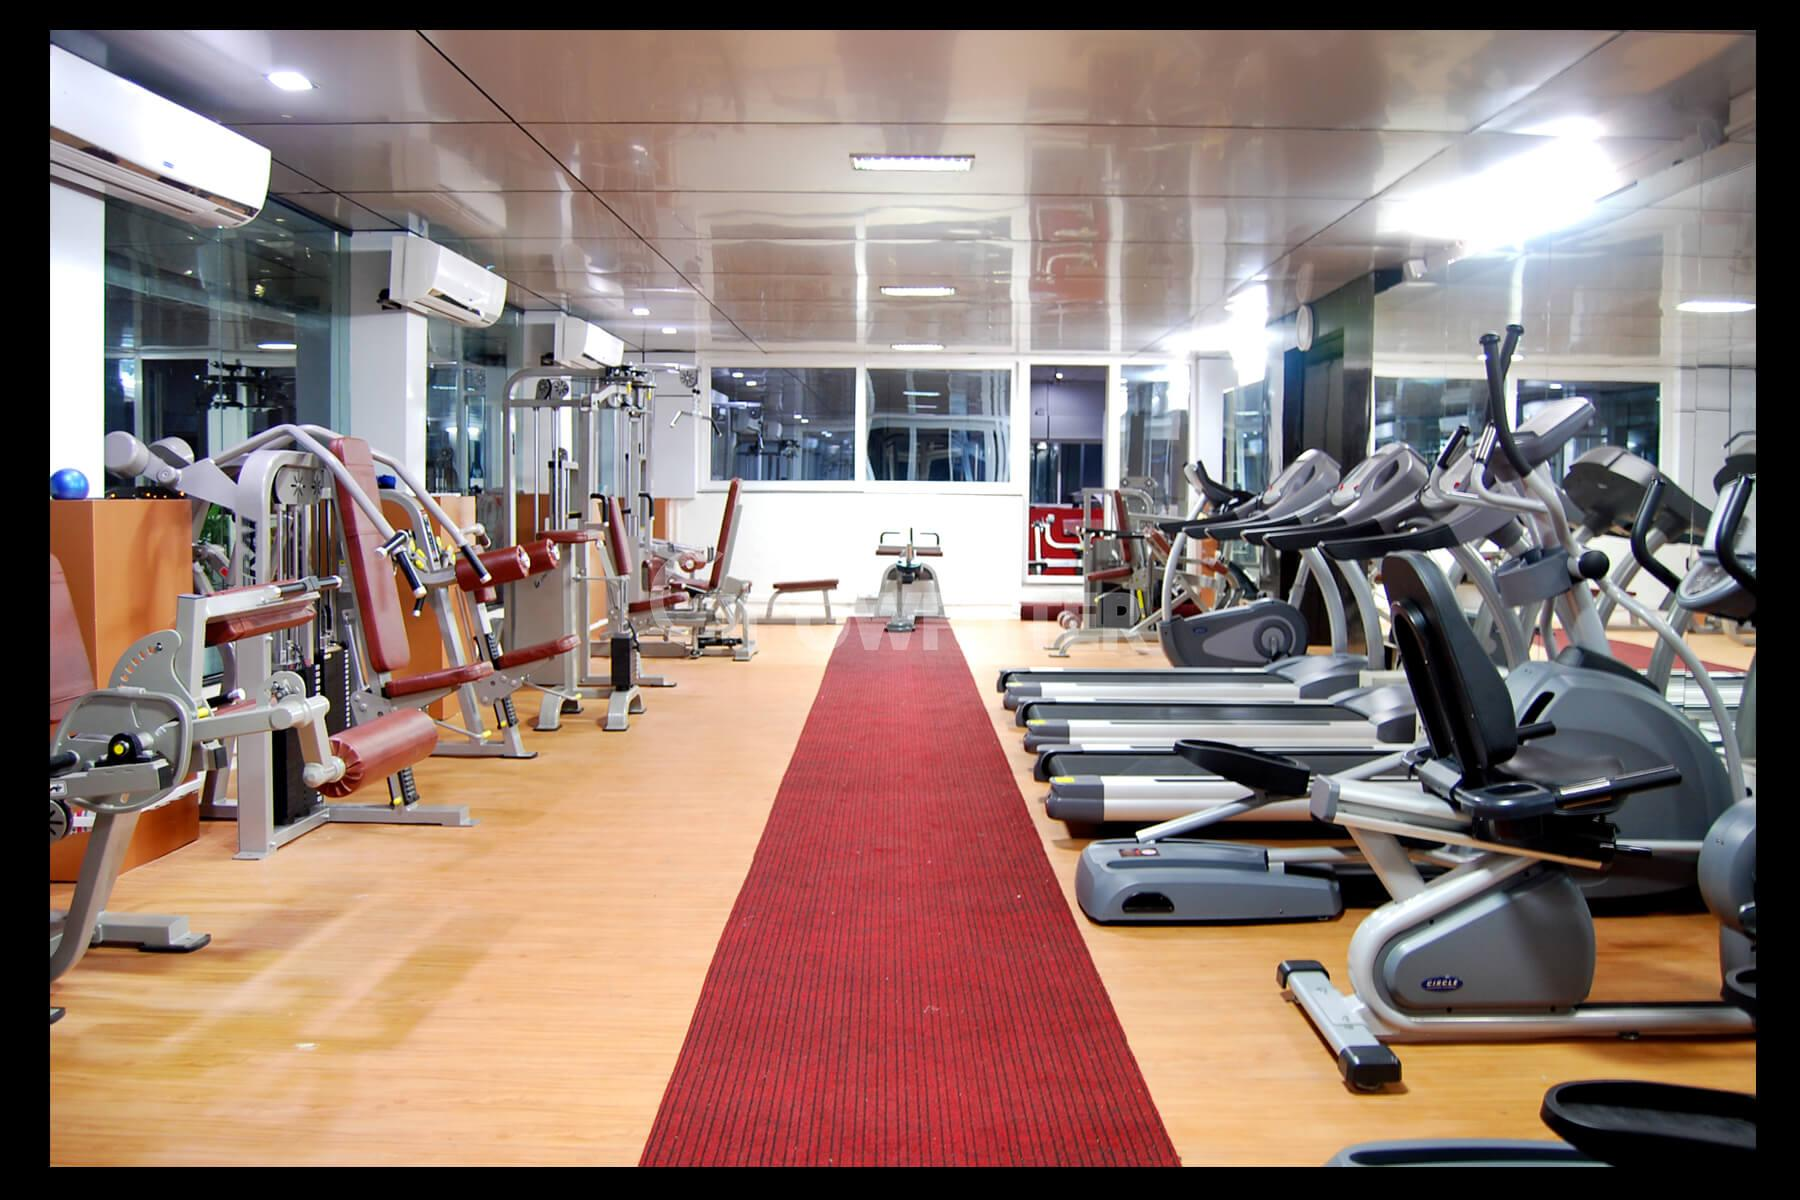 Physc gym bhosari pune membership fees timings